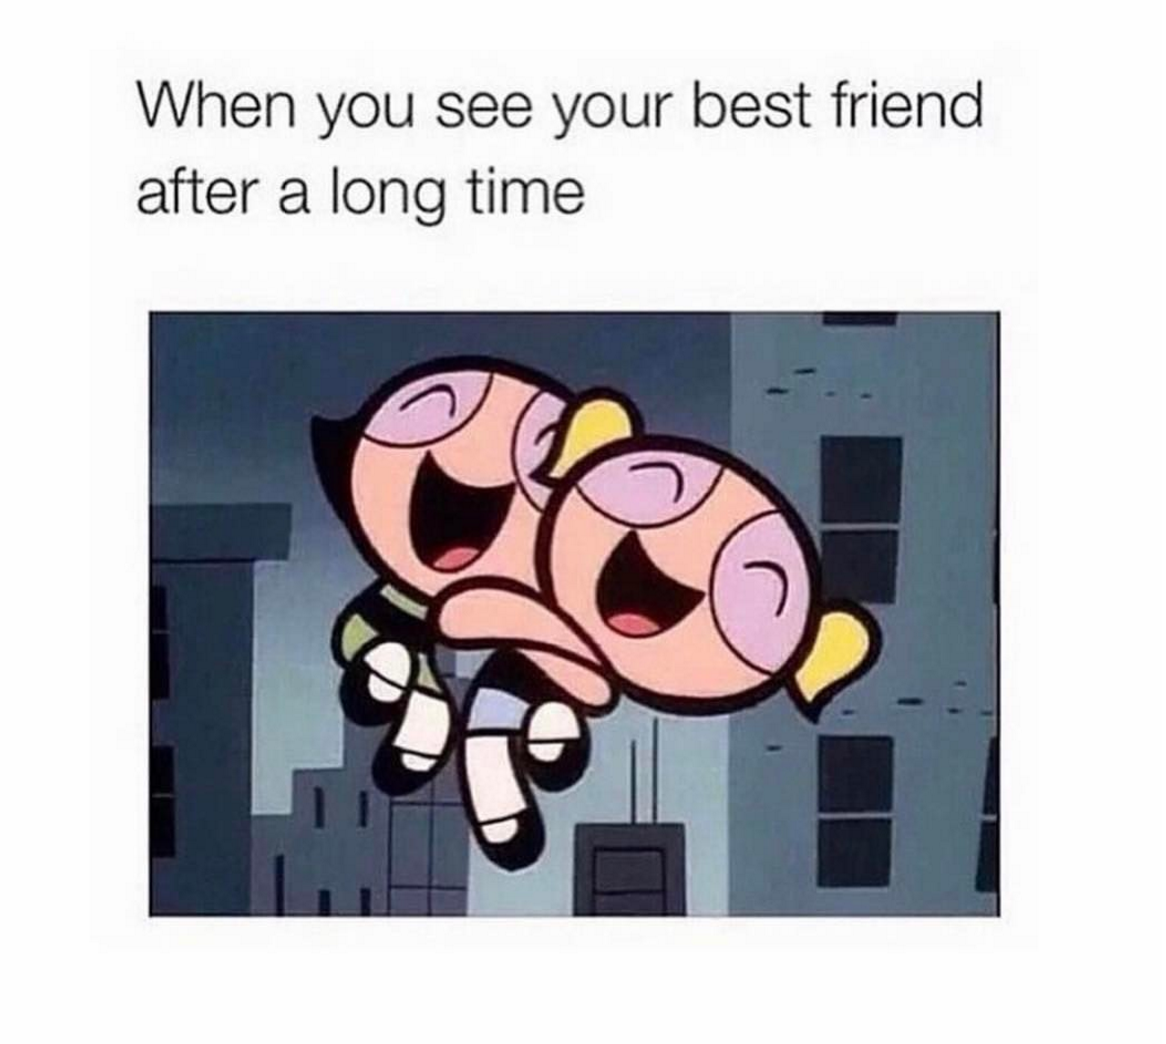 sub buzz 6630 1491241102 2?crop=950 890;9741&downsize=715 *&output format=auto&output quality=auto 35 memes you should send to your childhood bff right now